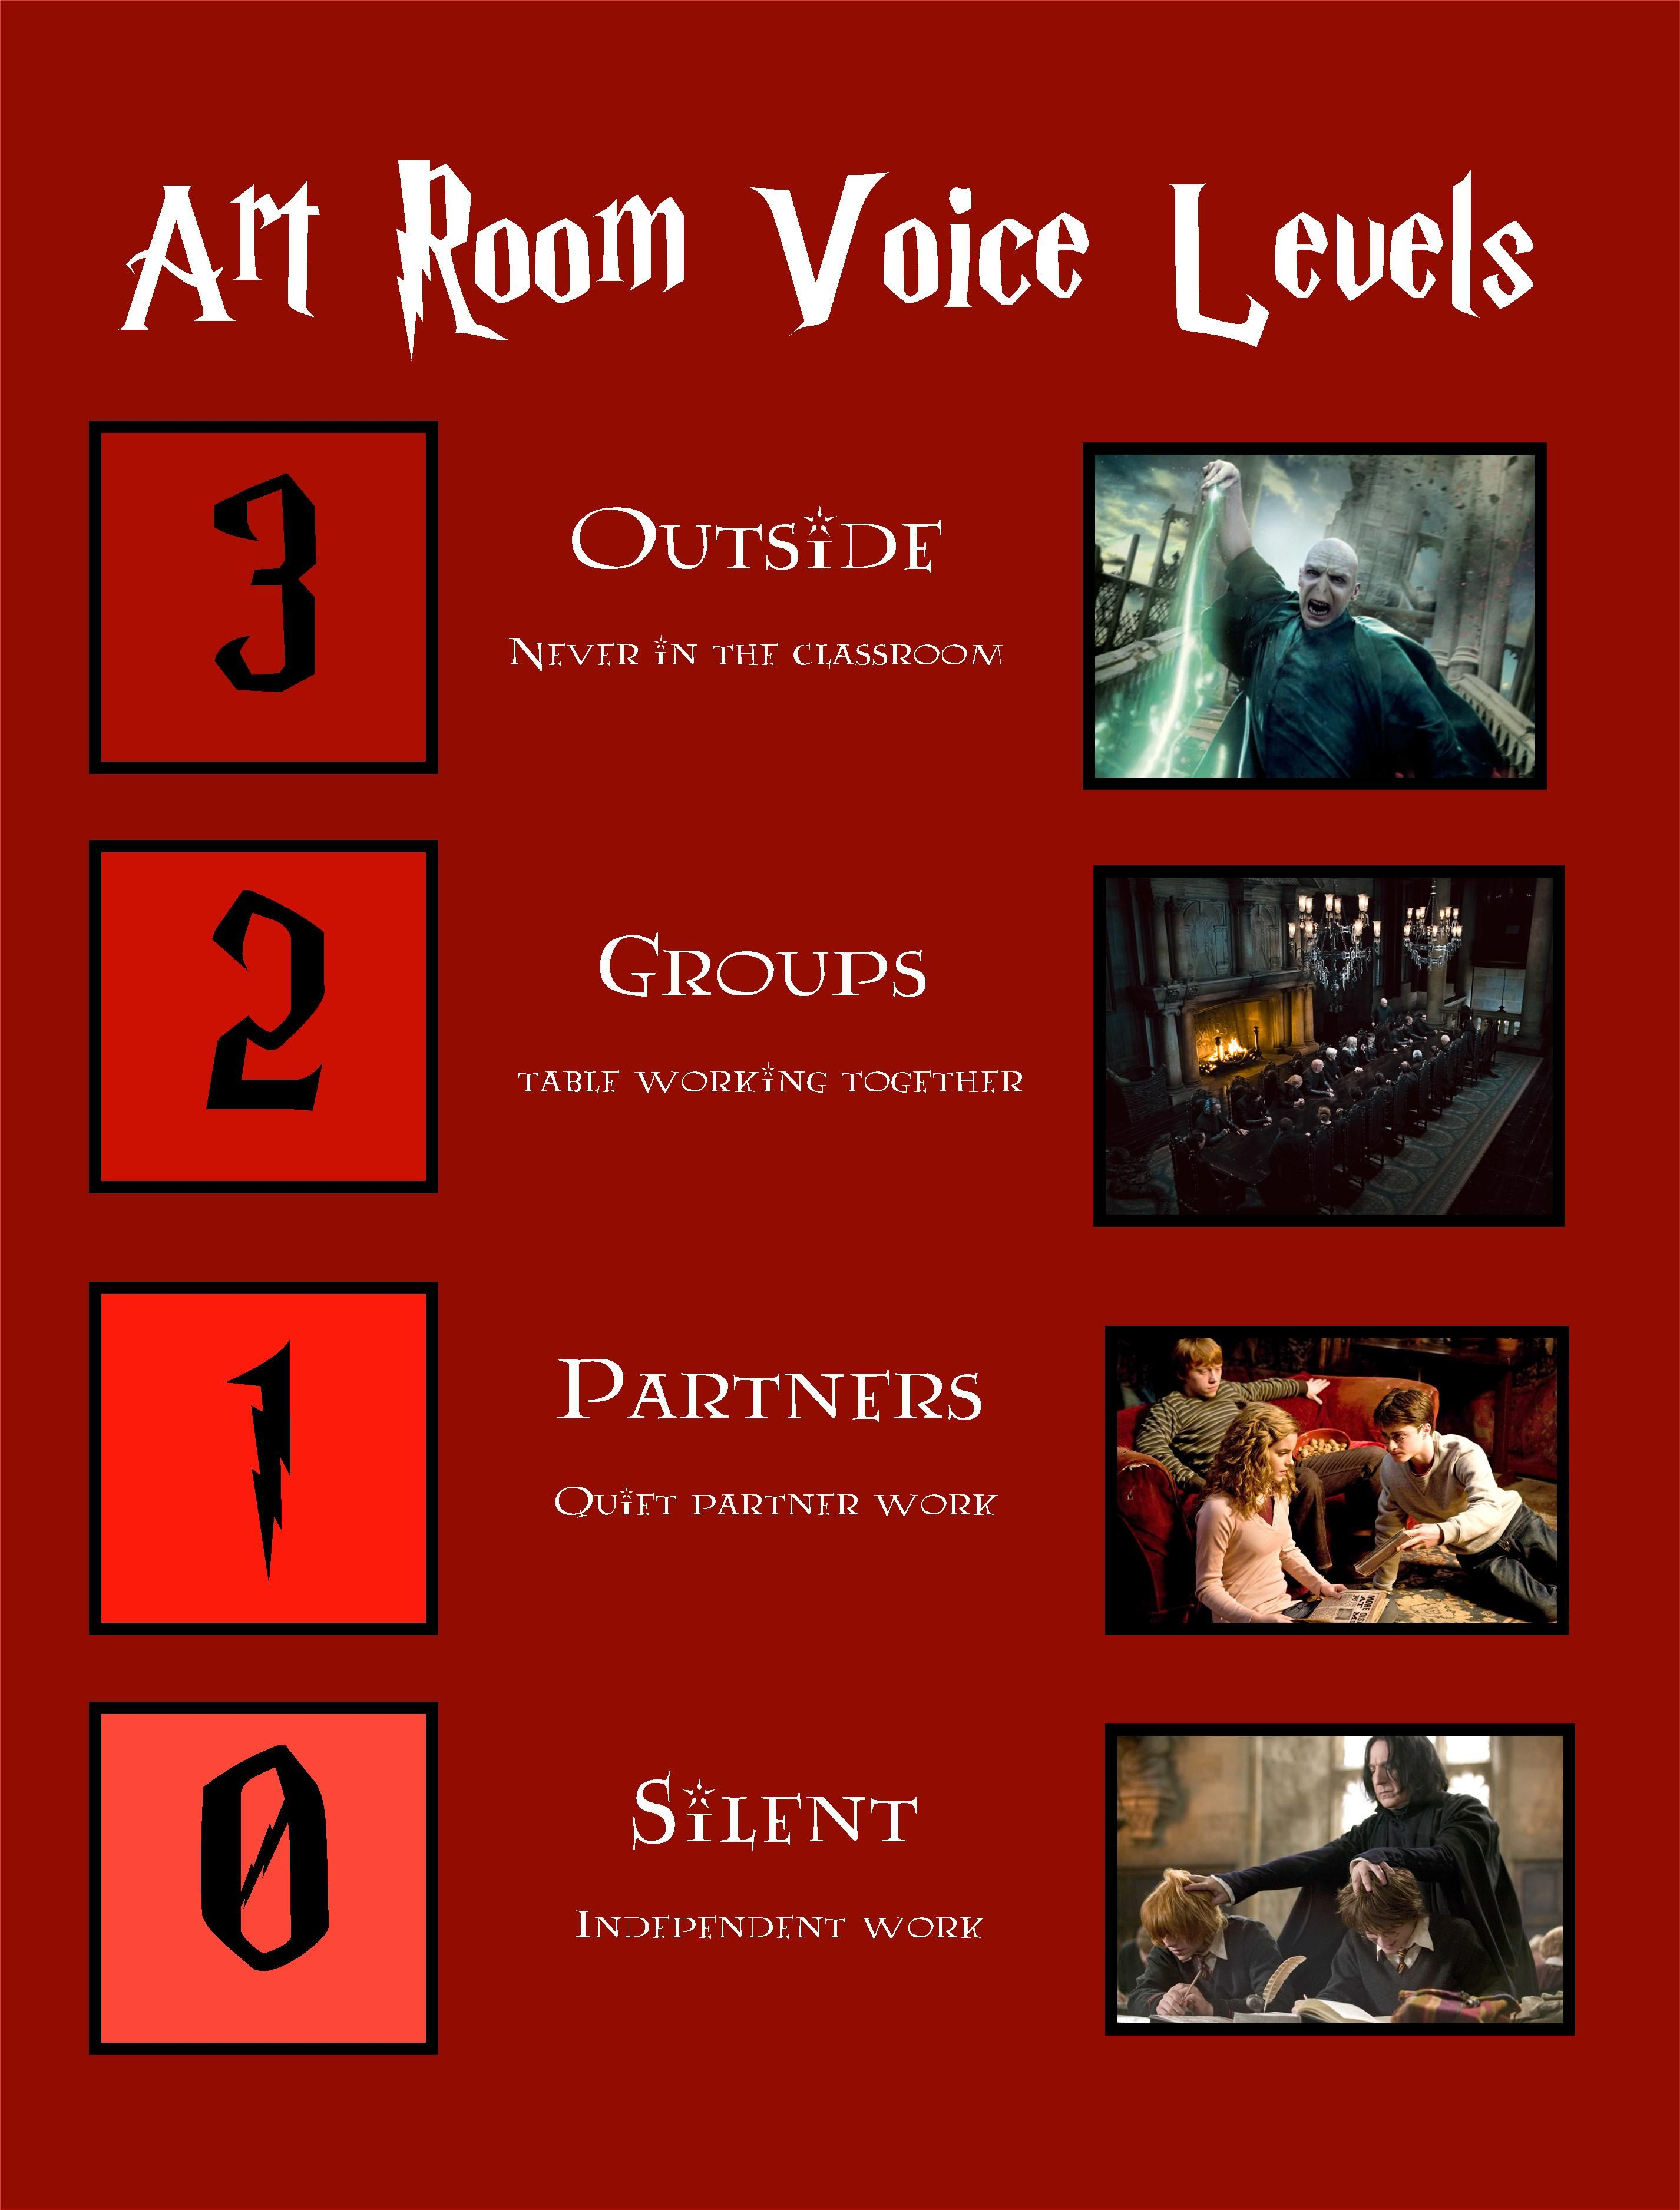 Harry Potter Book Level : Harry potter classroom voice levels poster mrs